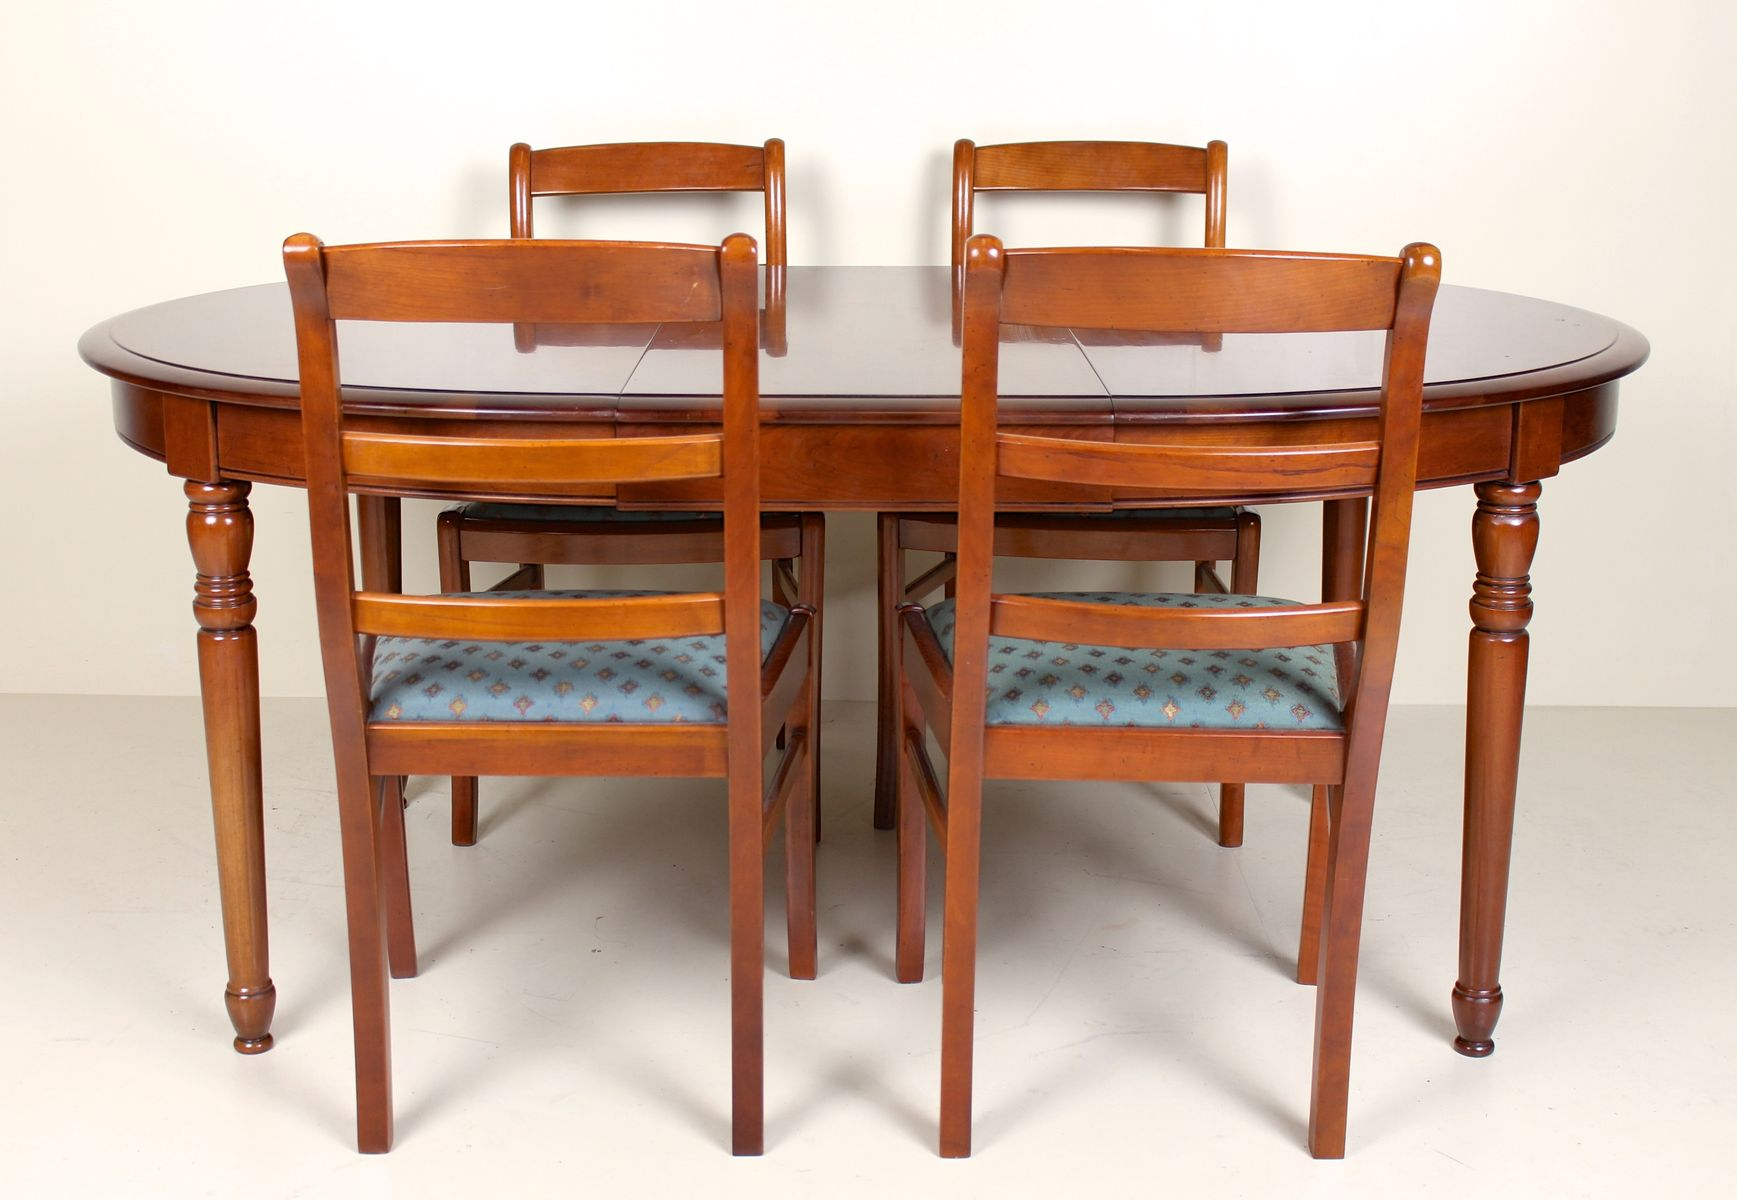 Vintage Mahogany Dining Table & 4 Chairs